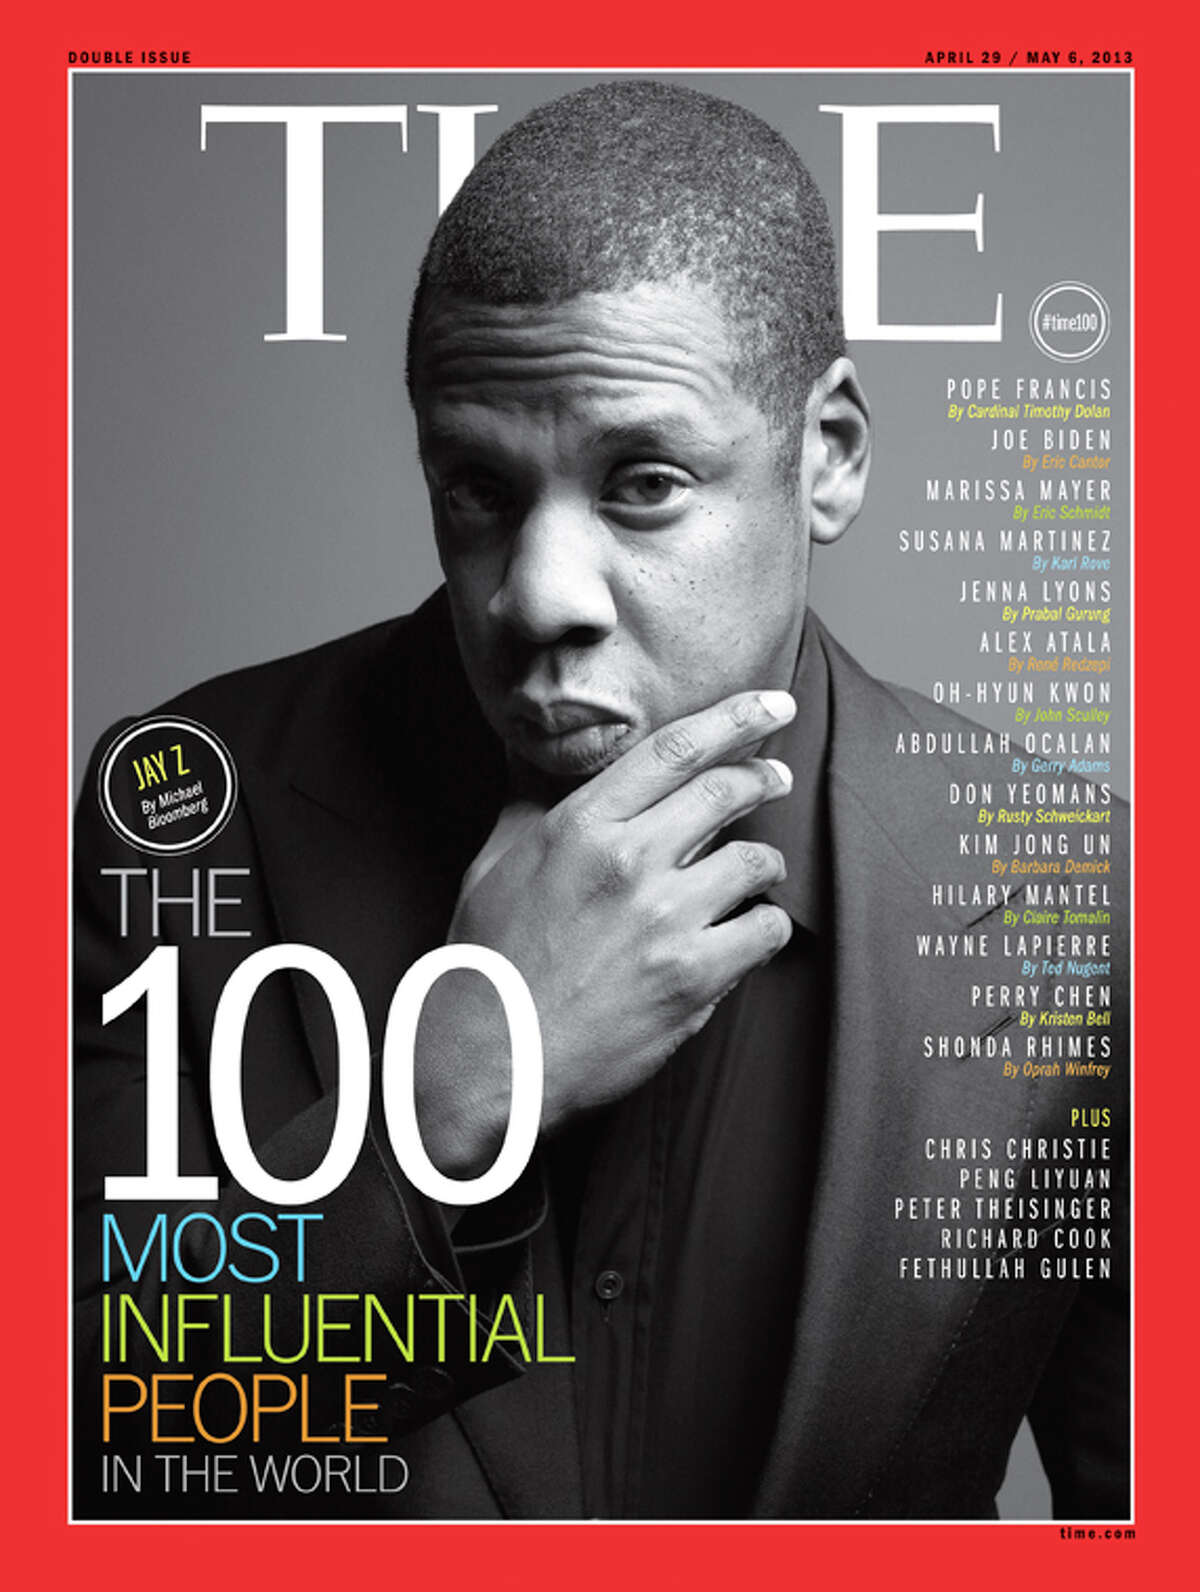 Jay-Z on the cover of Time's 100 Most Influential People In The World.See more who made the list in this slideshow.